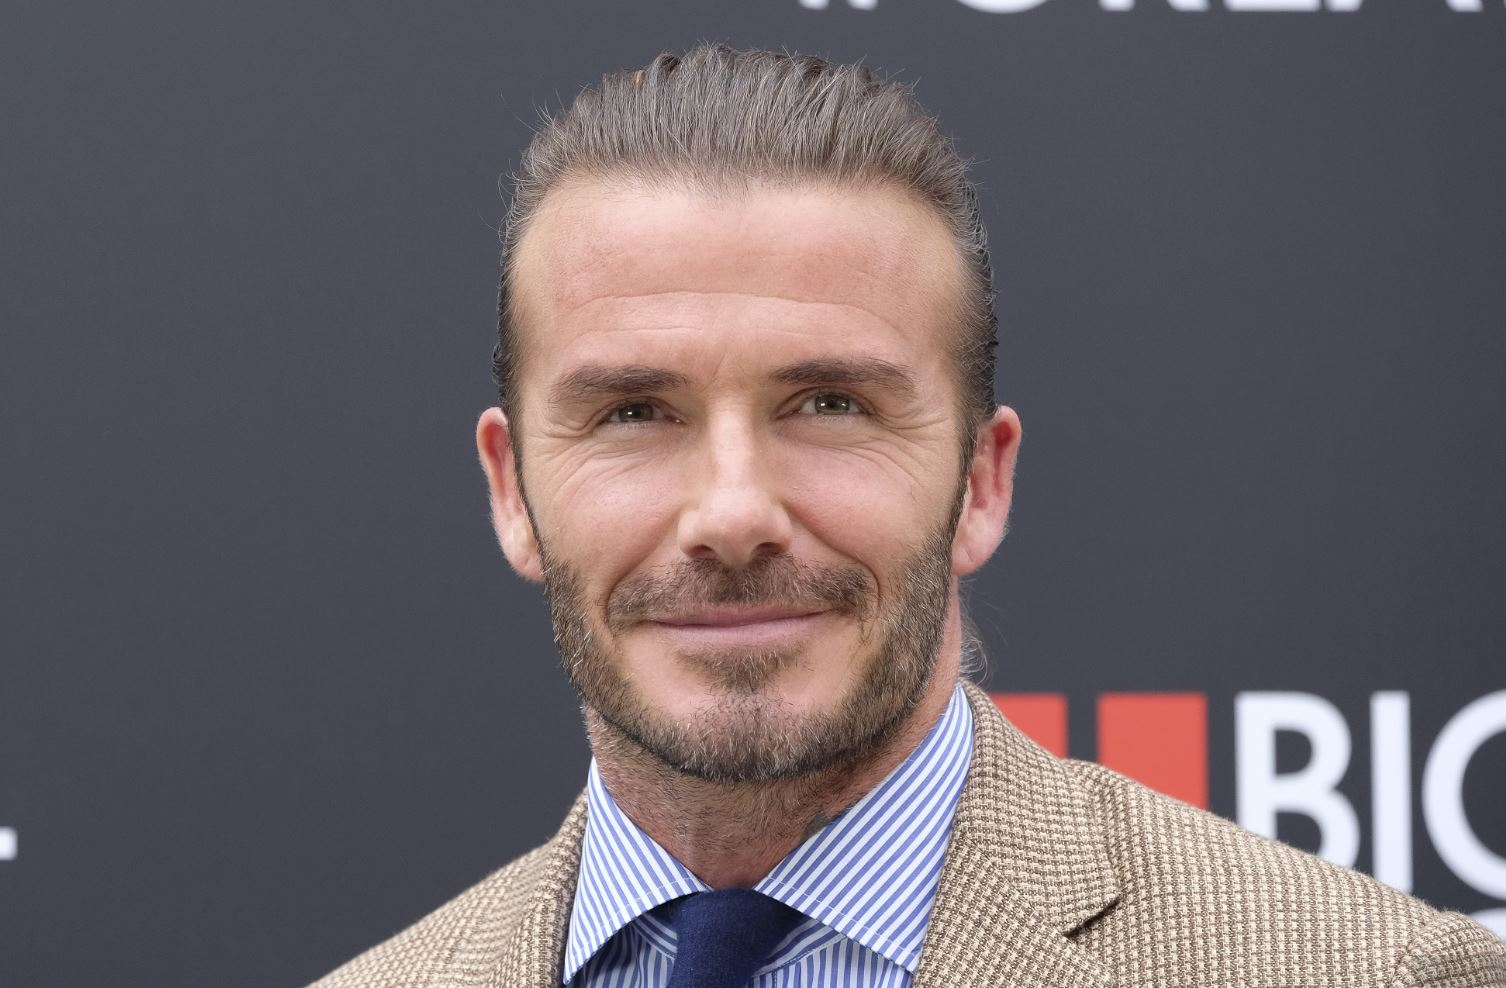 David Beckham's fans SLATE his new hairstyle after sharing selfie